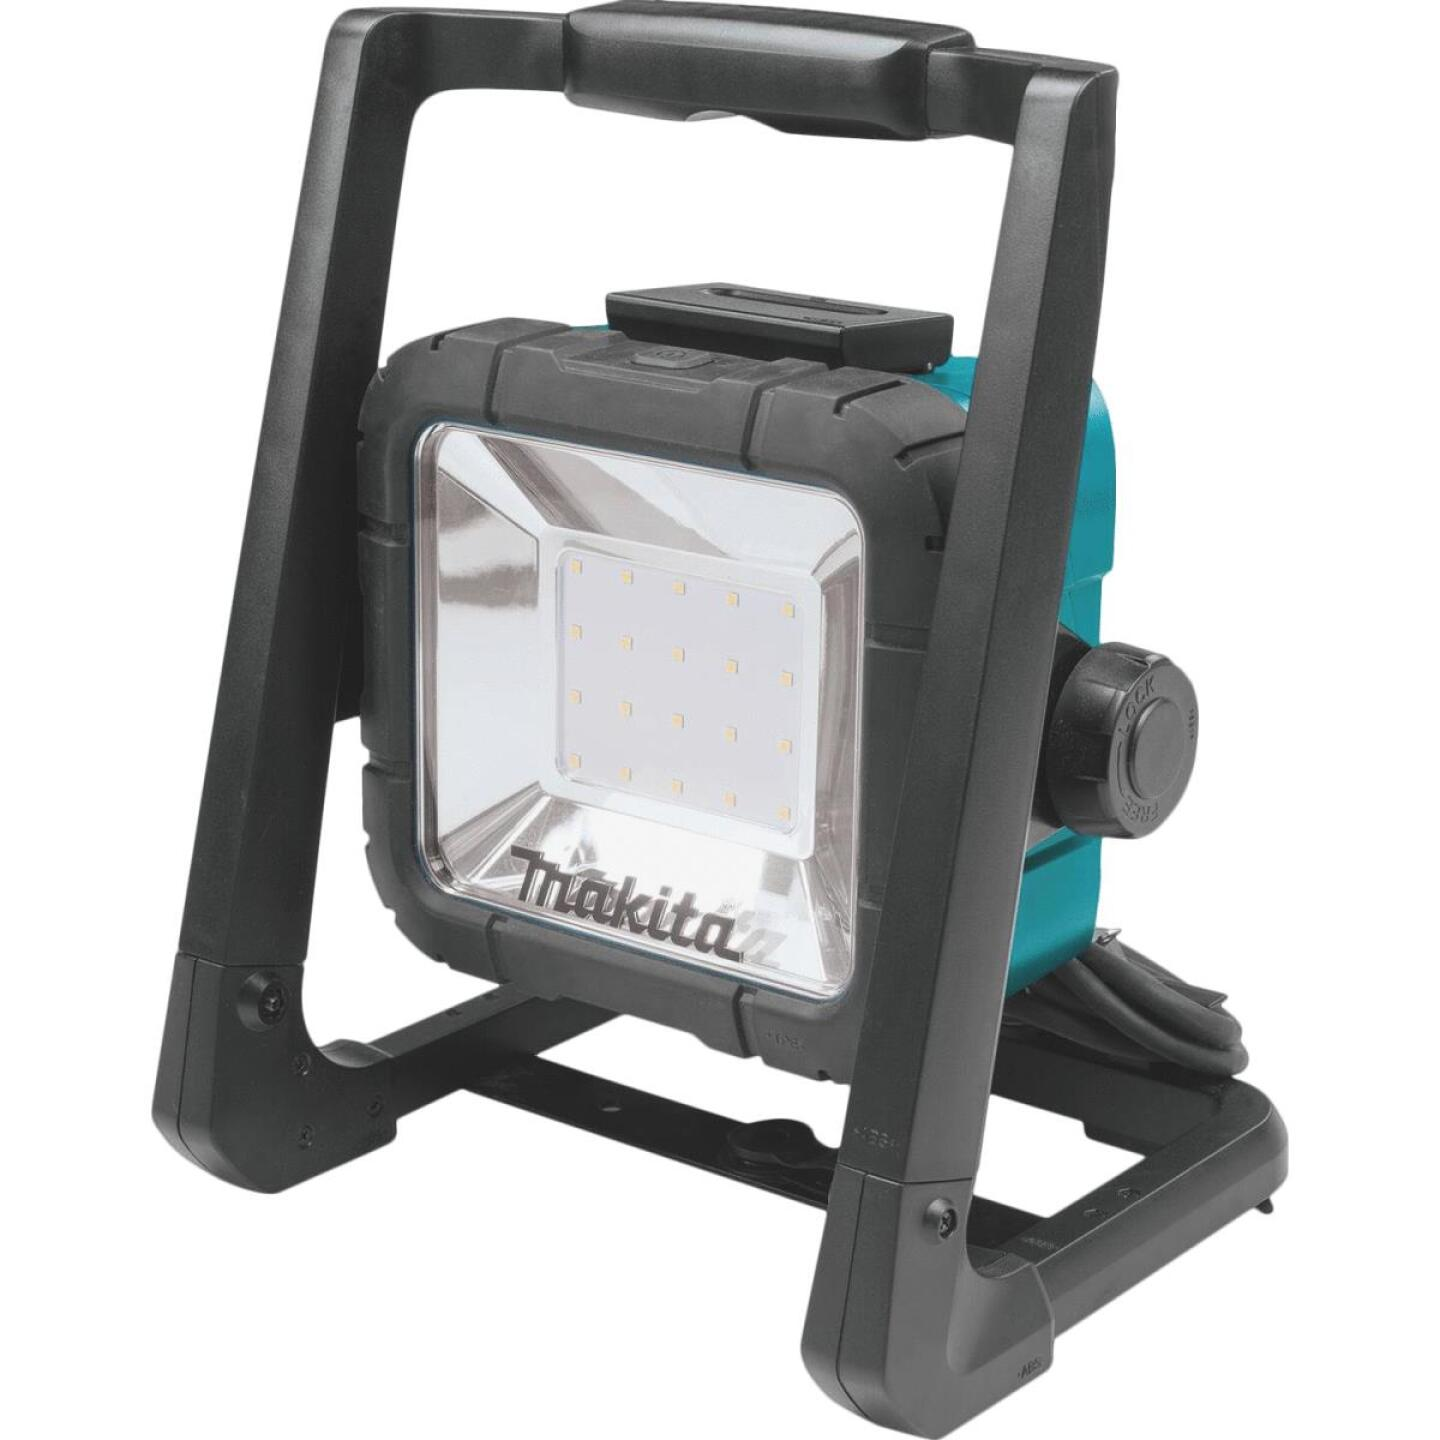 Makita 18 Volt LXT Lithium-Ion 20 LED Corded/Cordless Work Light (Bare Tool) Image 1